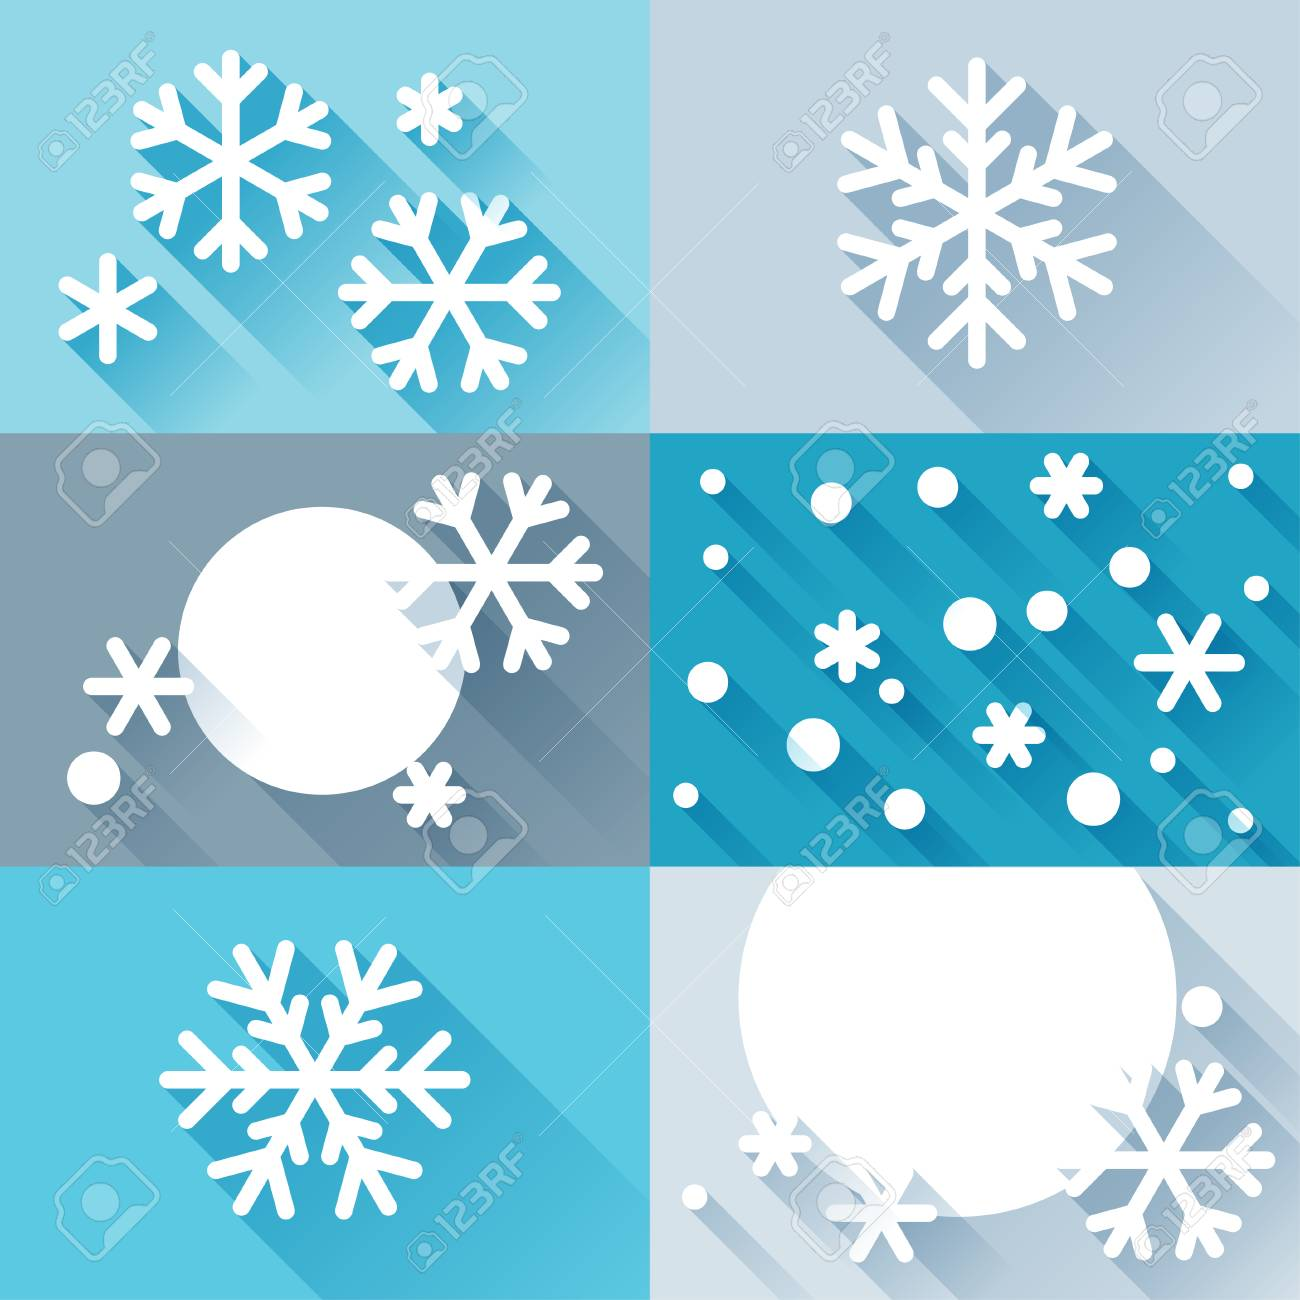 Abstract background with snowflakes in flat design style. Stock Vector - 22483825